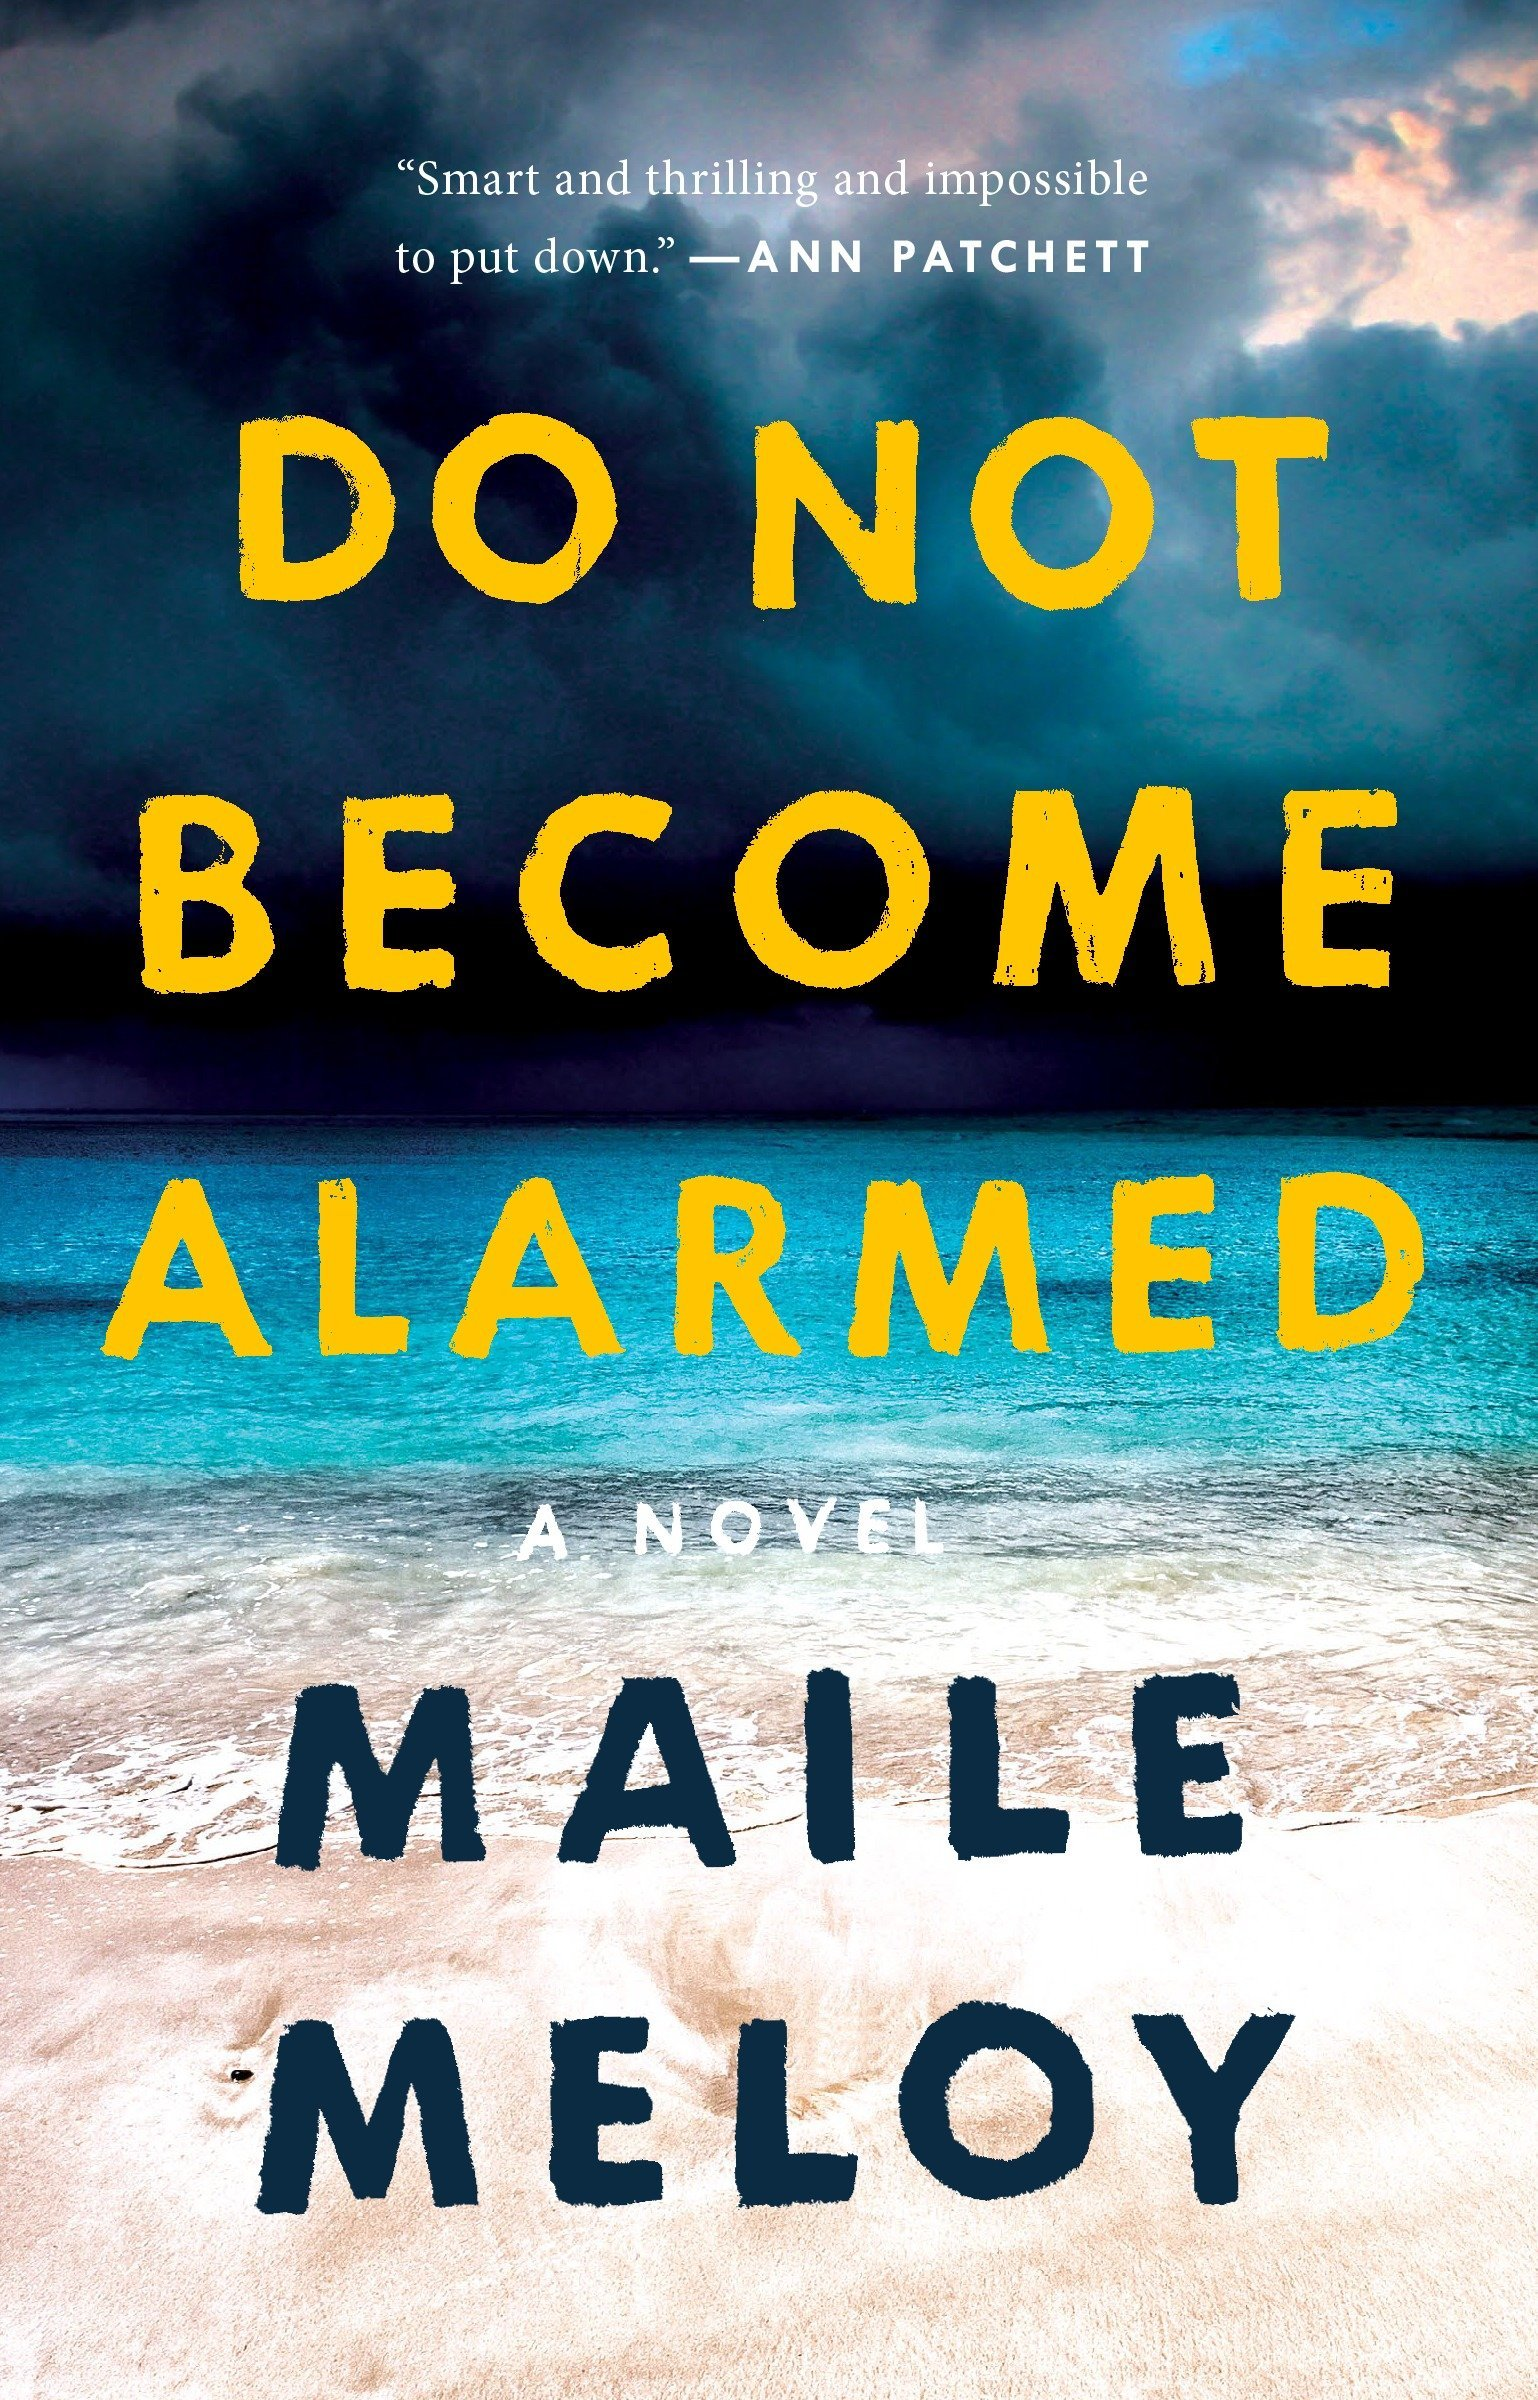 Do Not Become Alarmed: A Novel: Maile Meloy: 9780735216532: Amazon.com:  Books